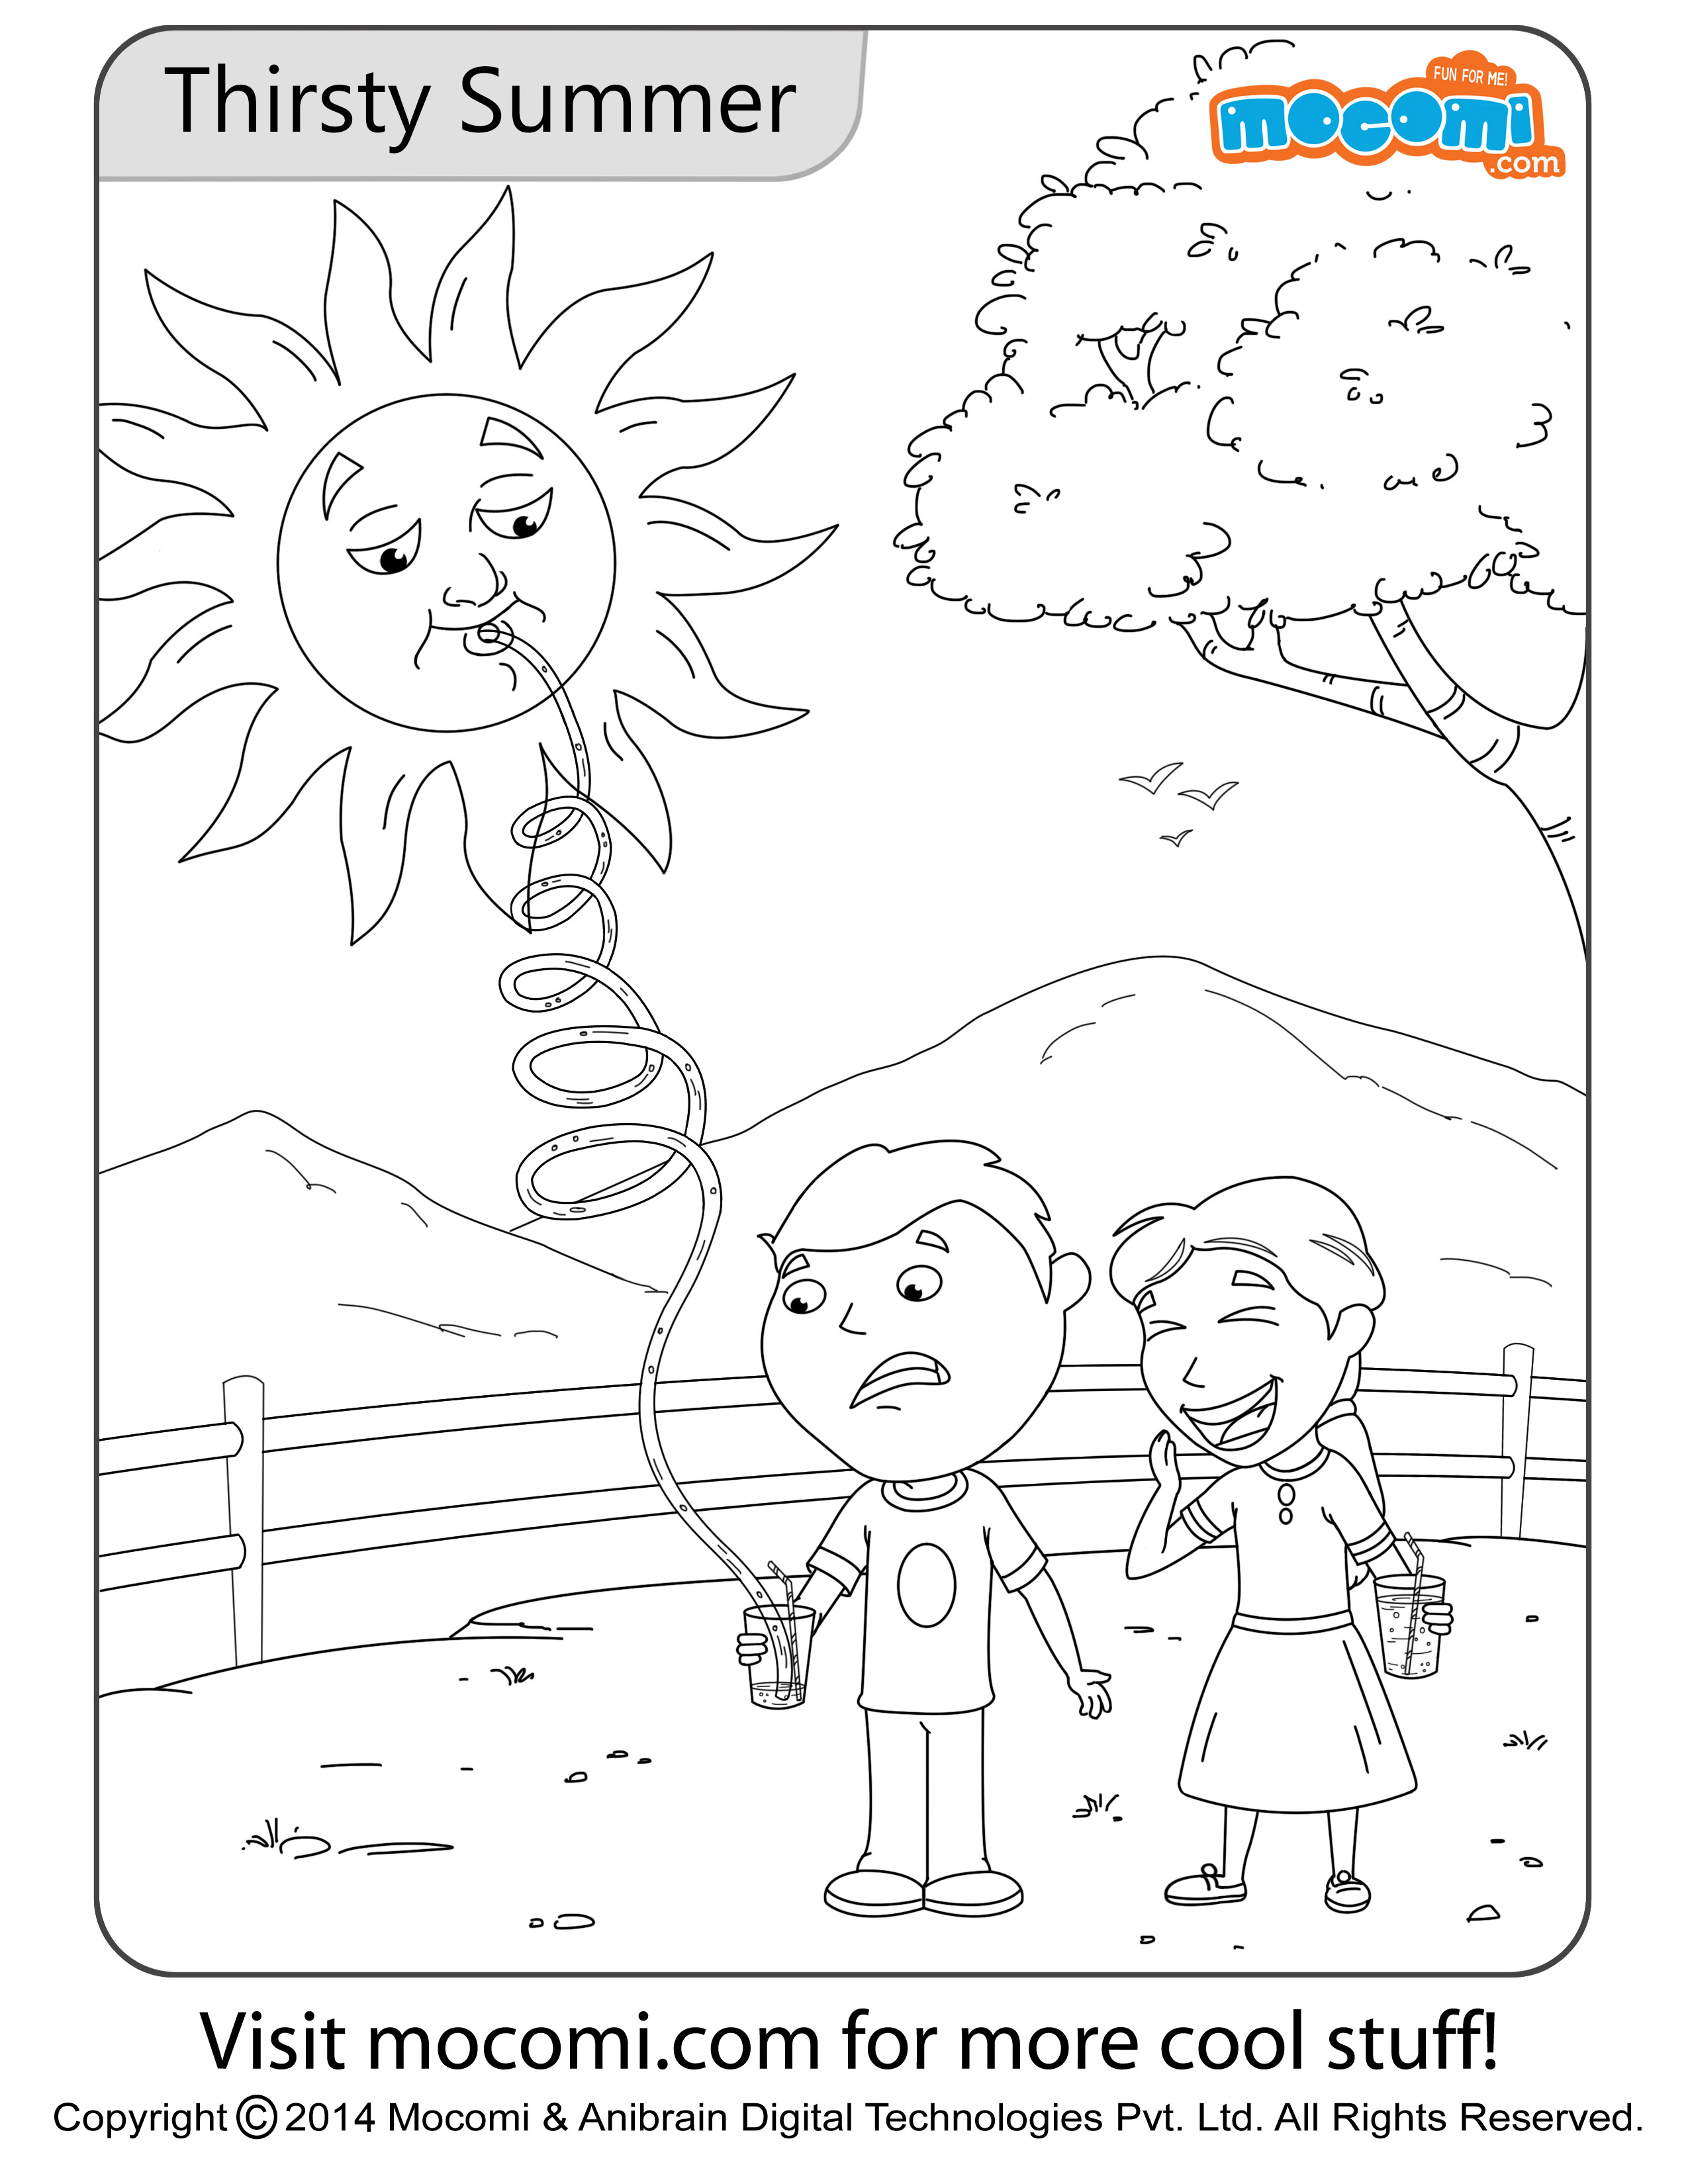 Thirsty Summer – Colouring Page